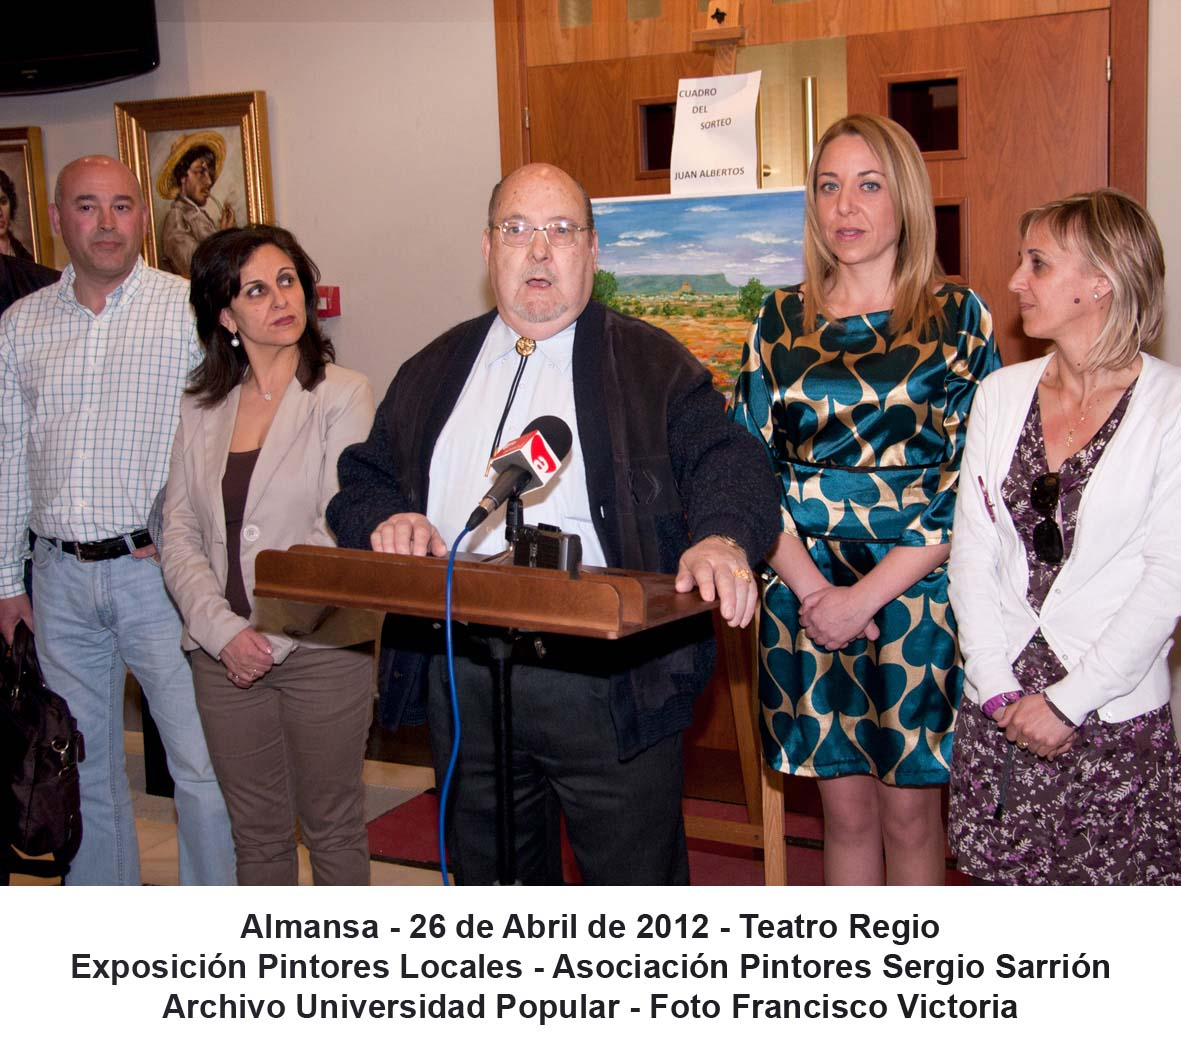 120426 ASOC PINTORES SERGIO SARRION 06